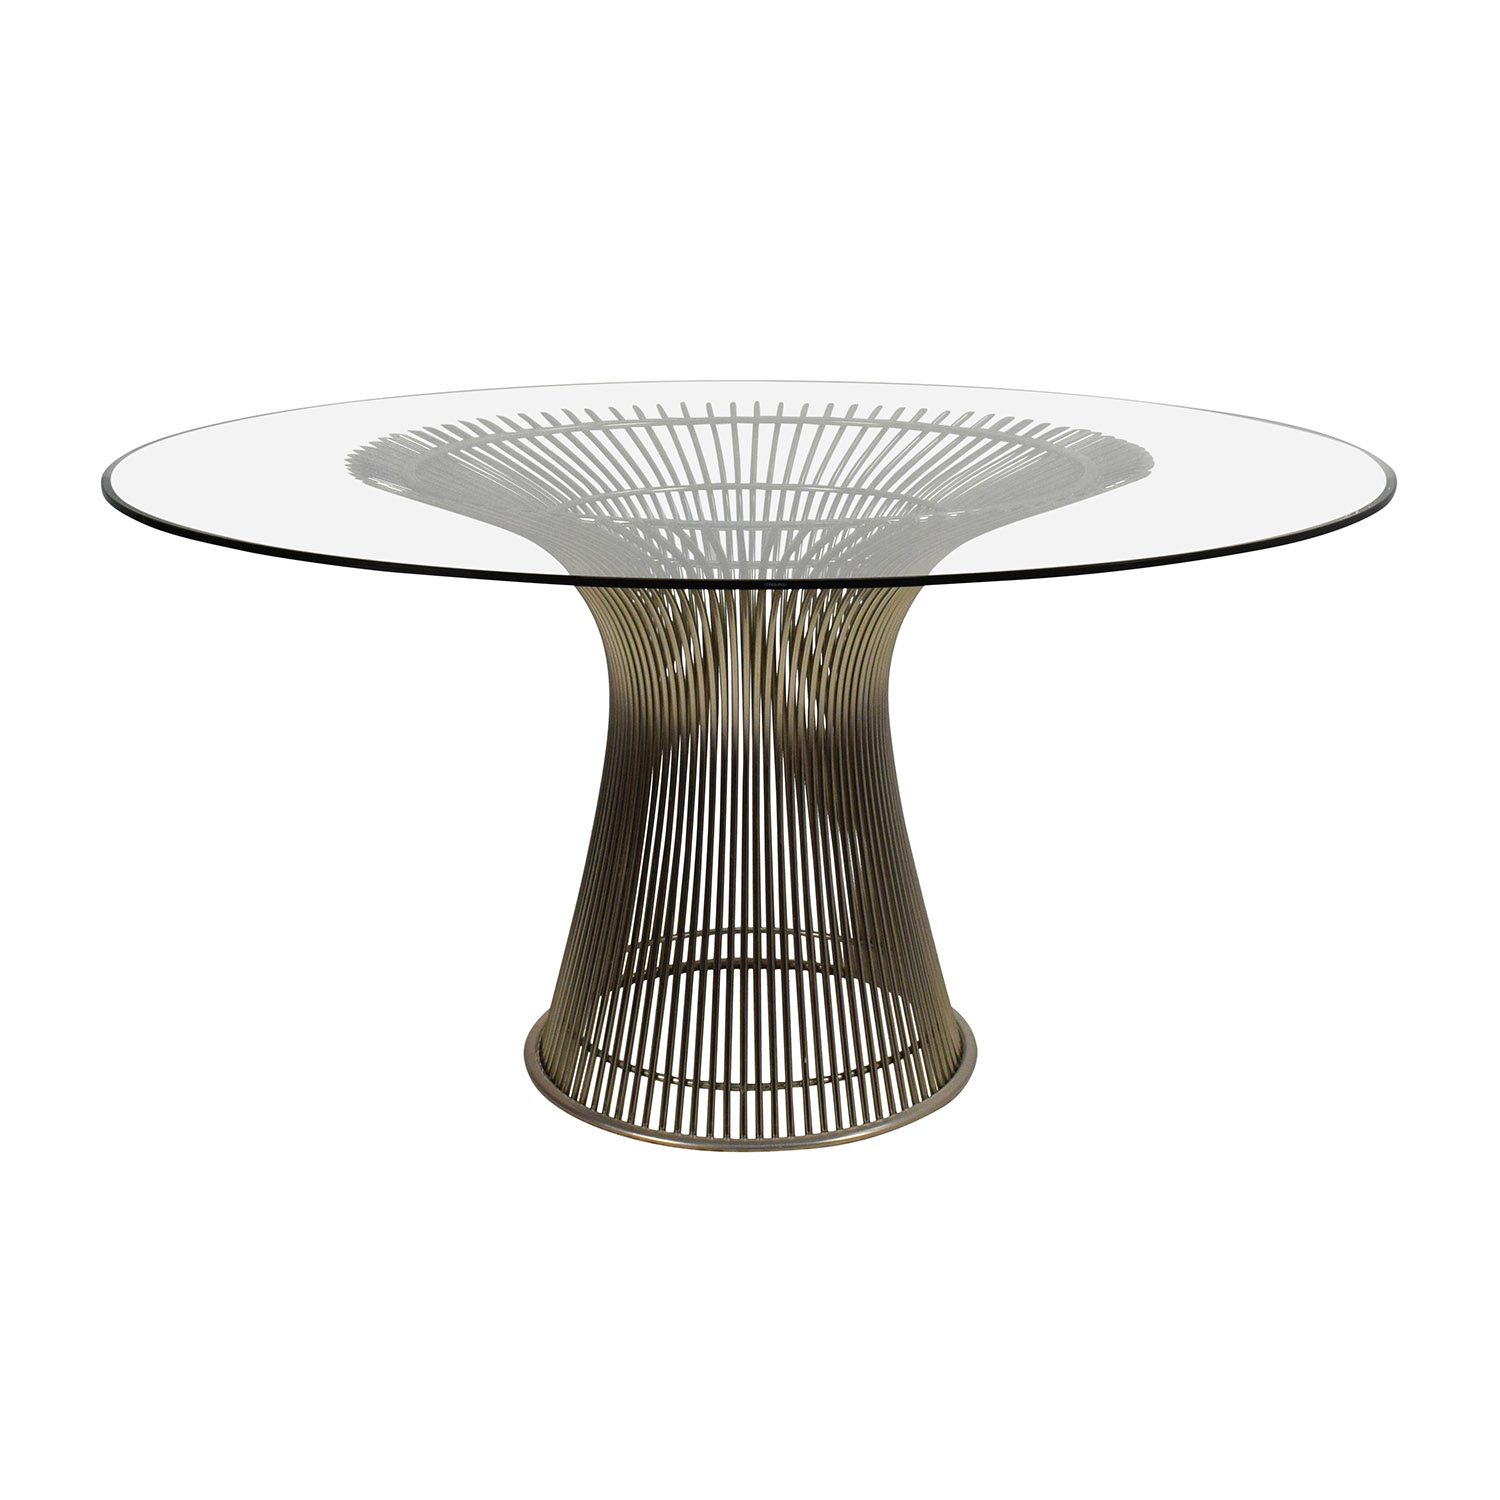 OFF Design Within Reach Design Within Reach Platner Dining